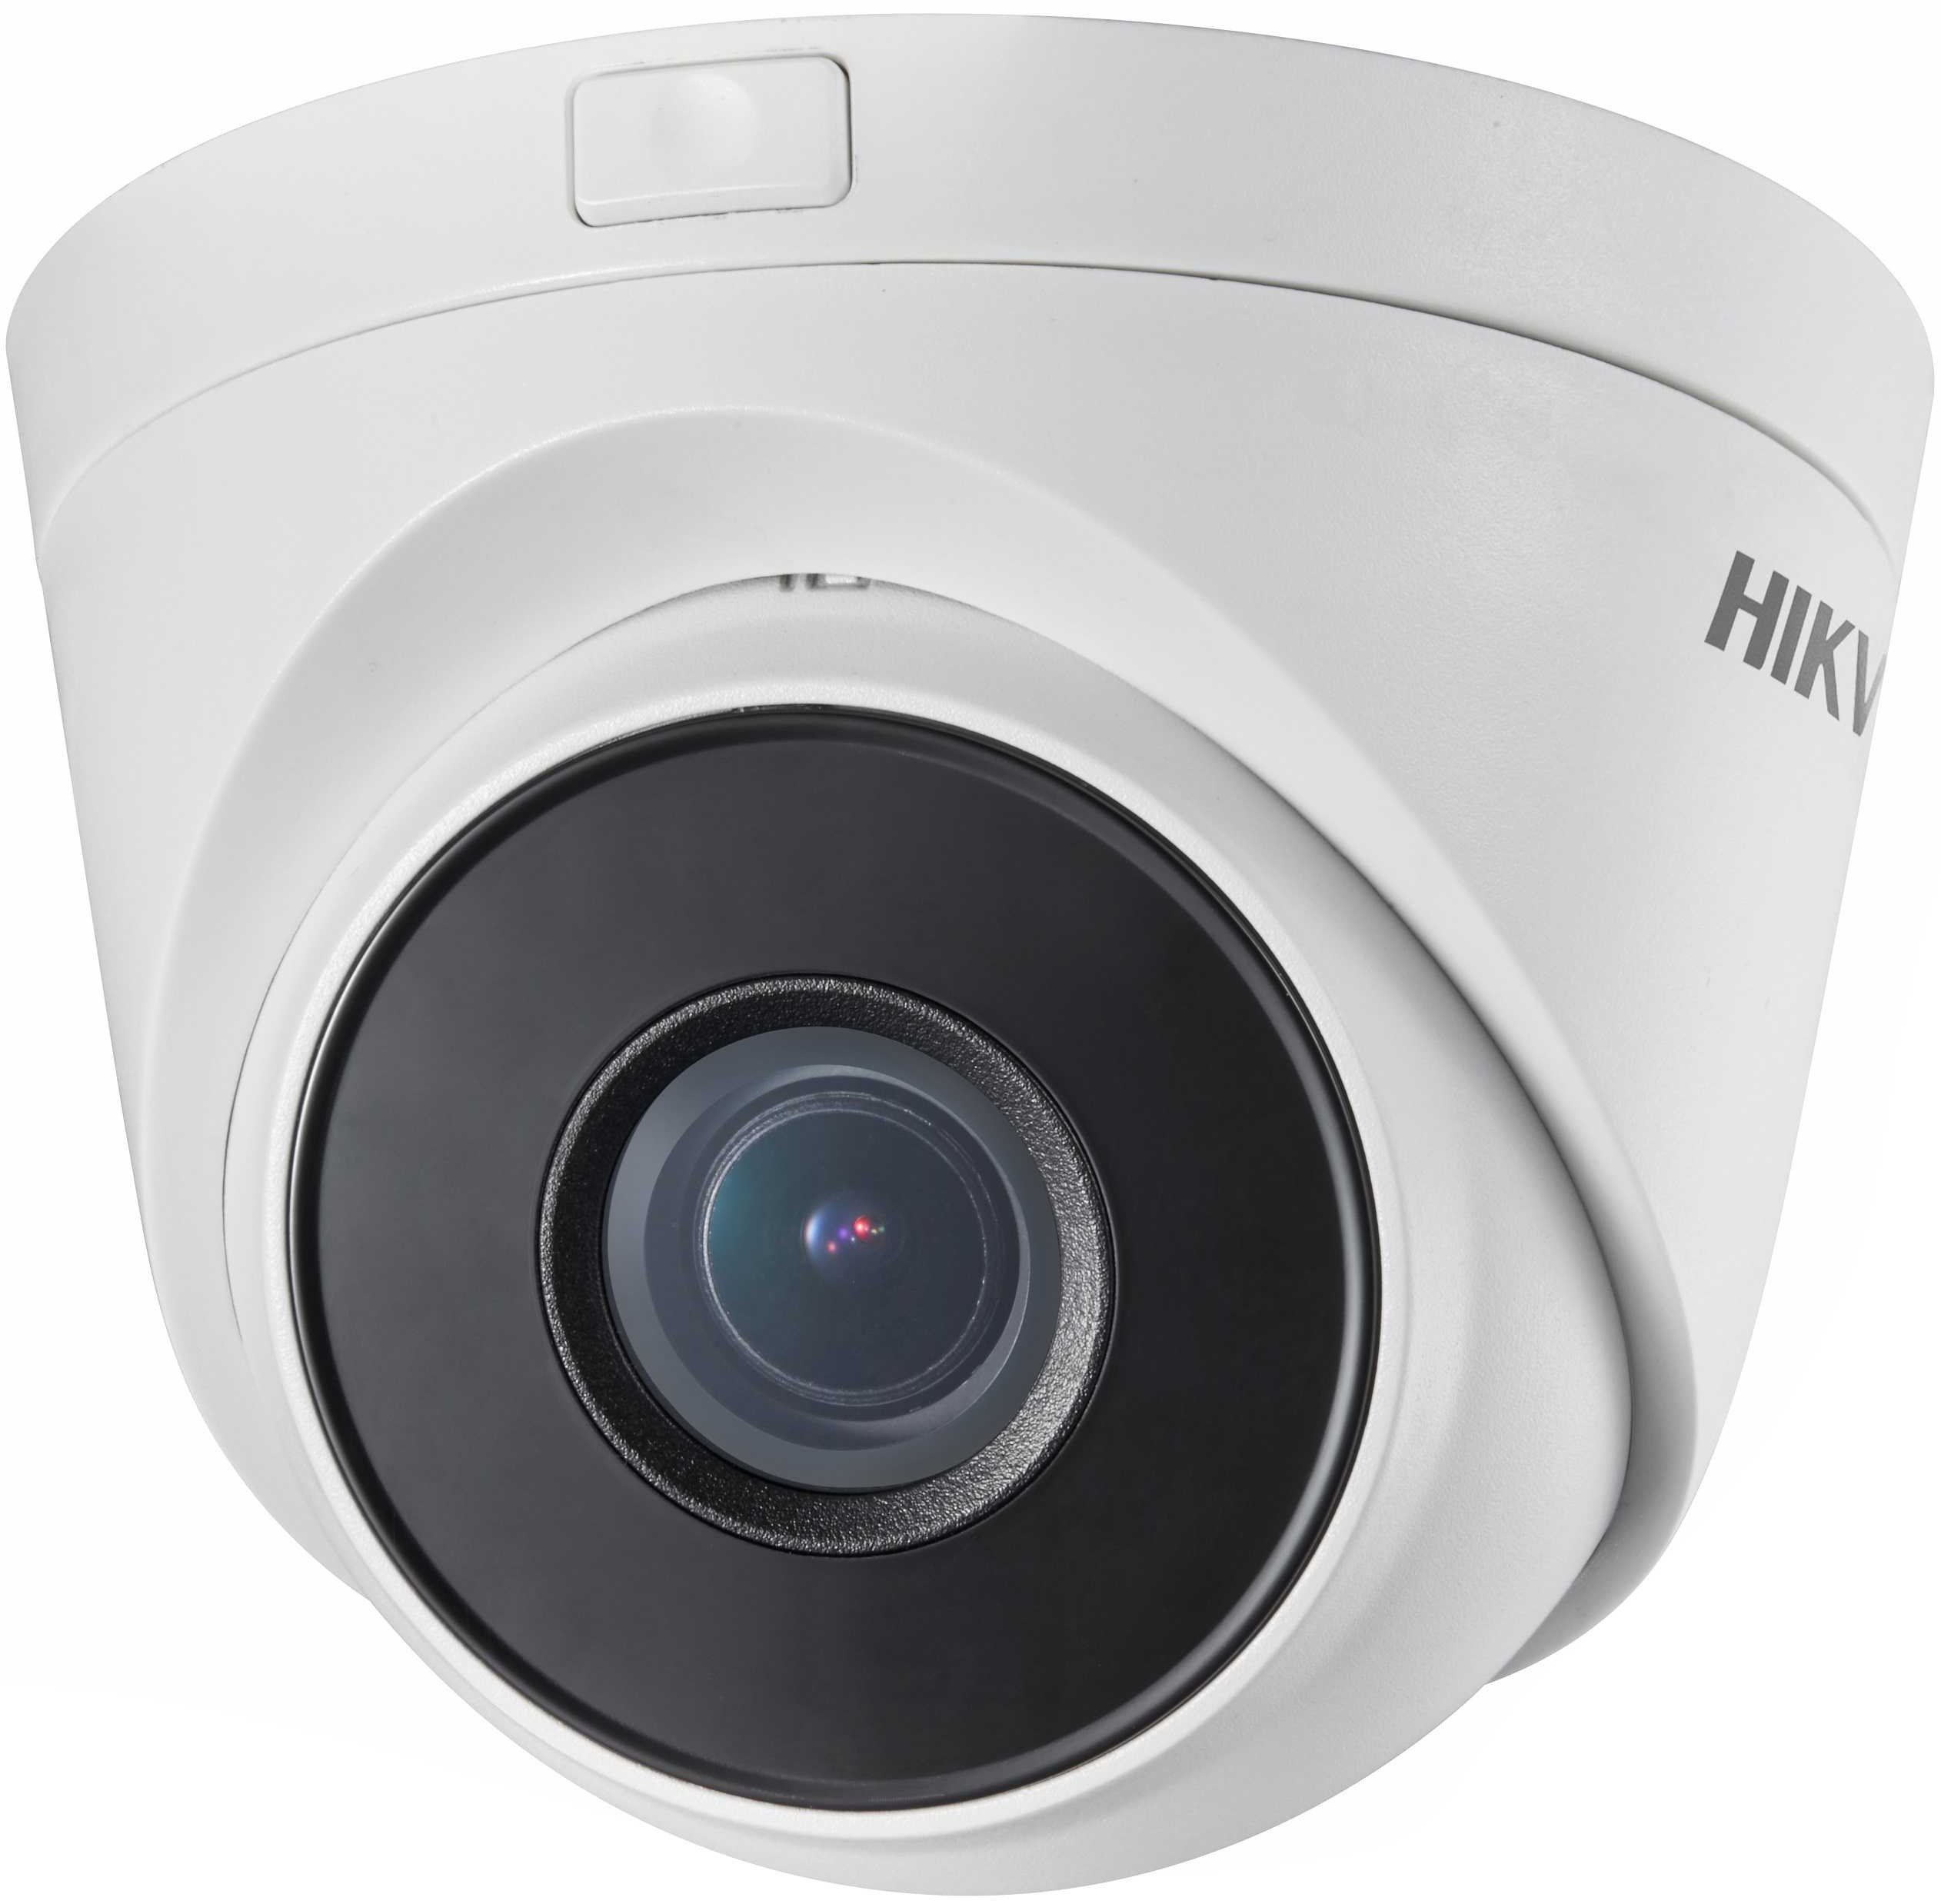 Hikvision DS-2CD1H41WD-IZ 2.8-12mm